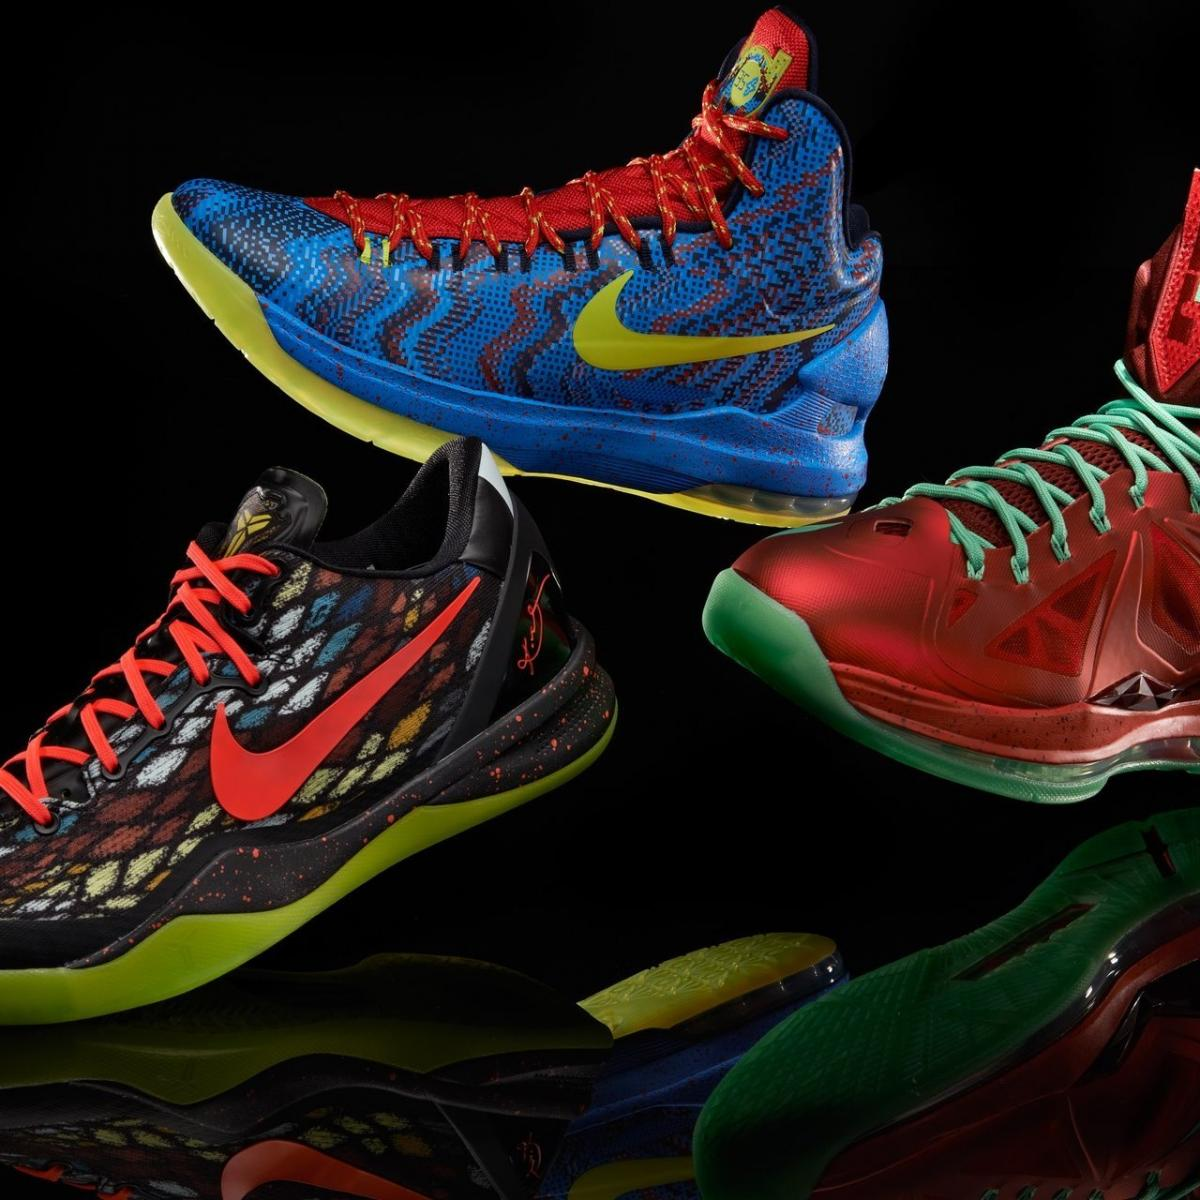 b81b33aebce Nike Christmas Day Shoes 2012  Ranking the Best Footwear of the Holiday